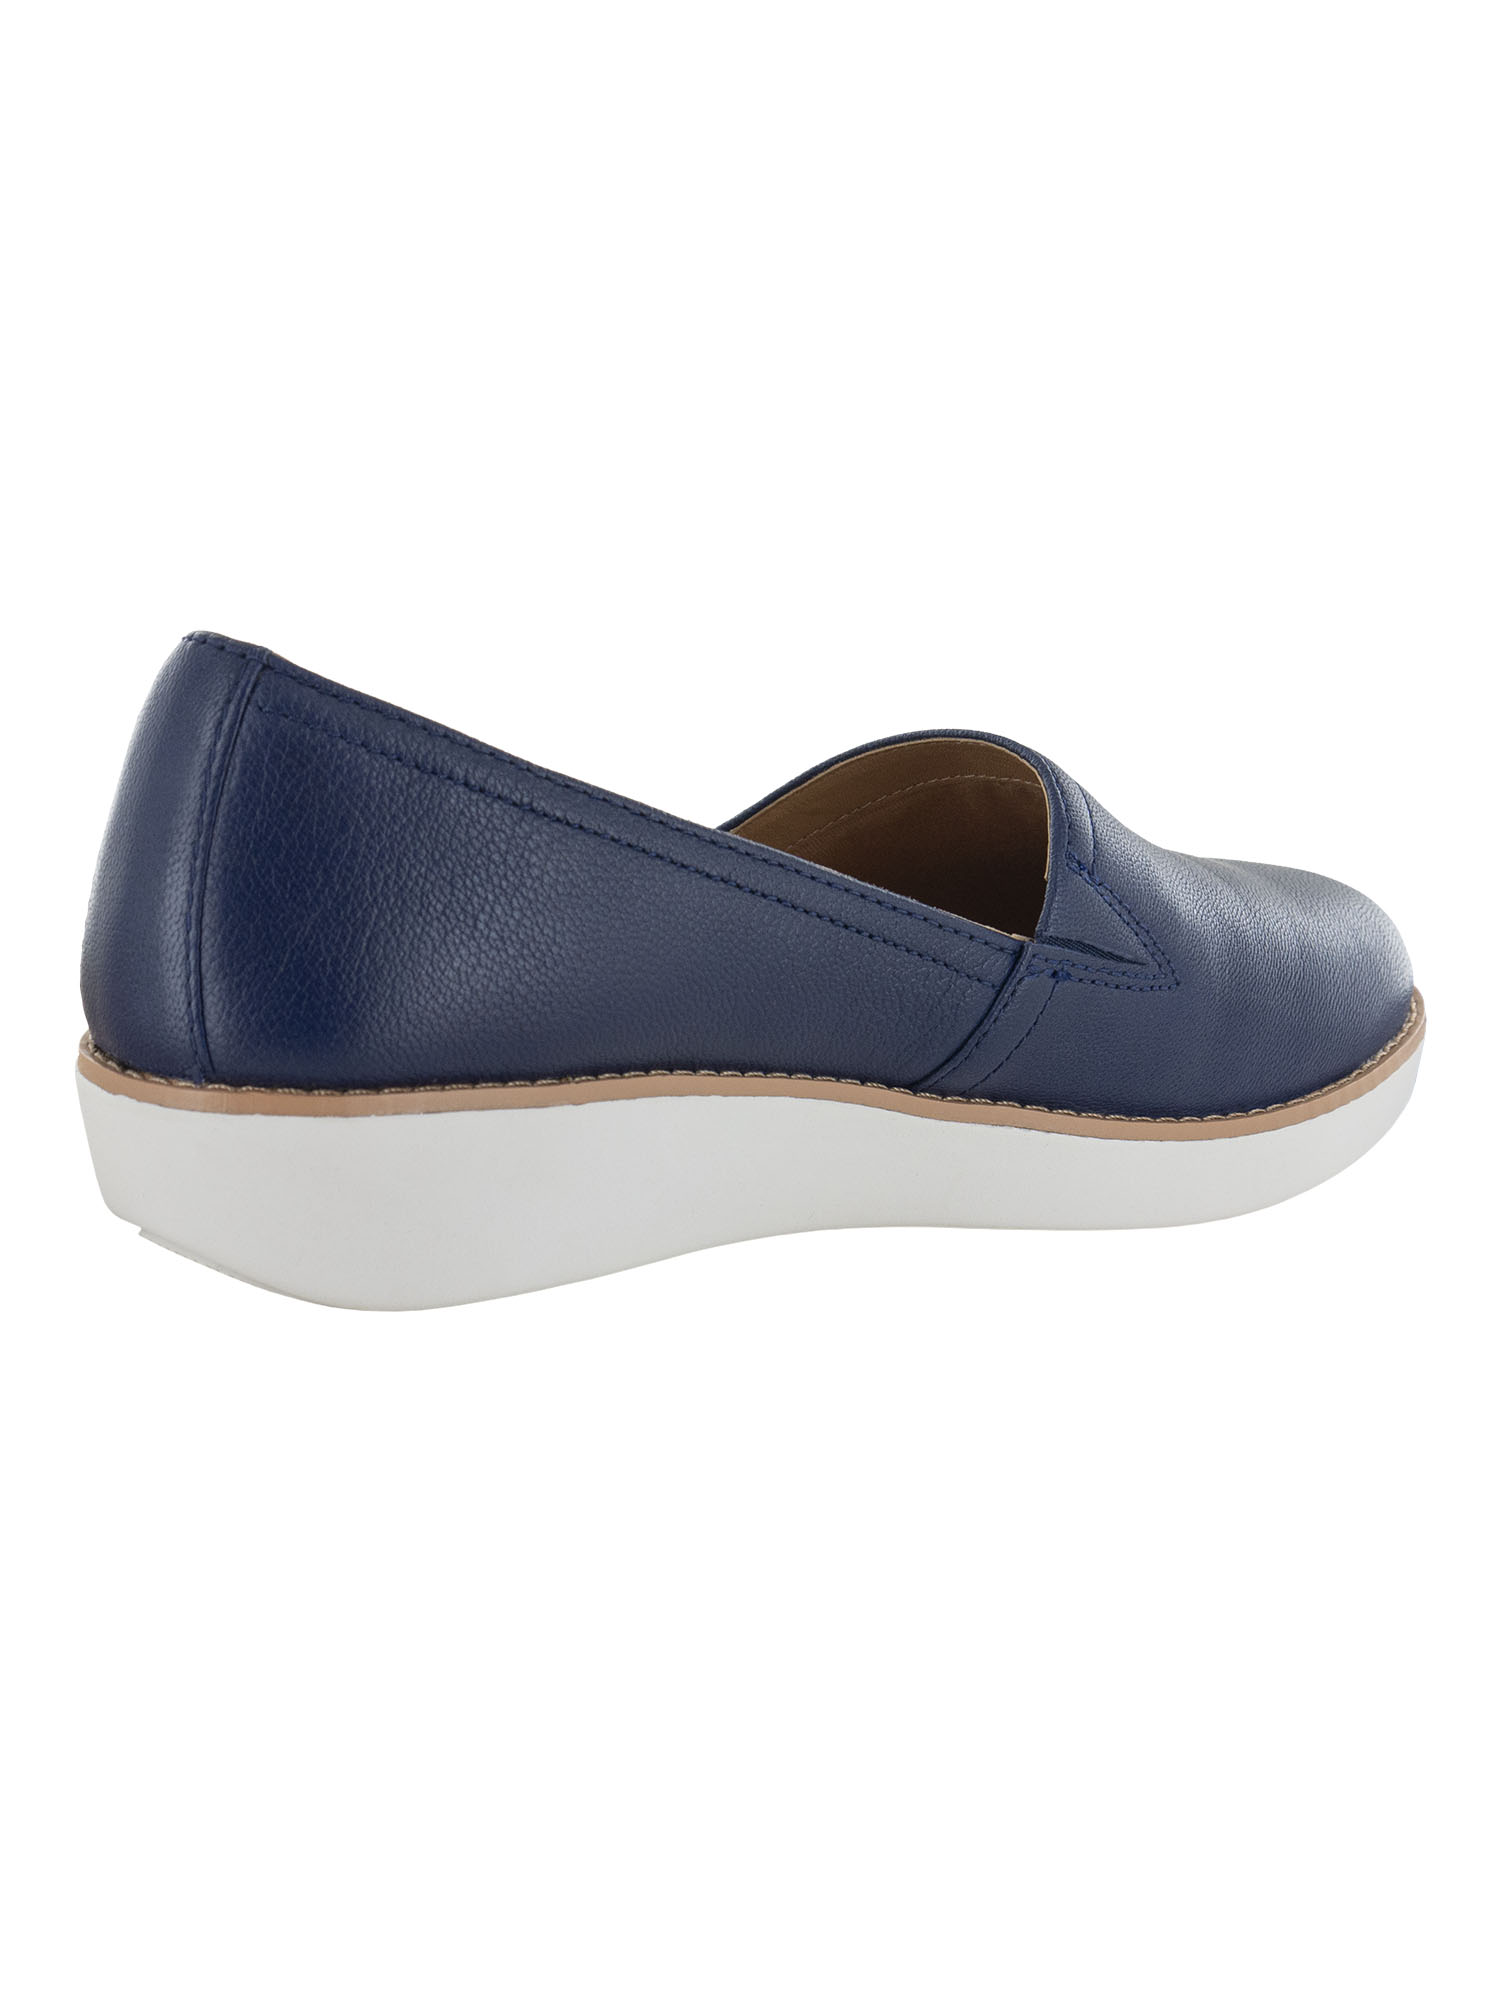 Fitflop-Womens-Casa-Slip-On-Loafer-Shoes thumbnail 7